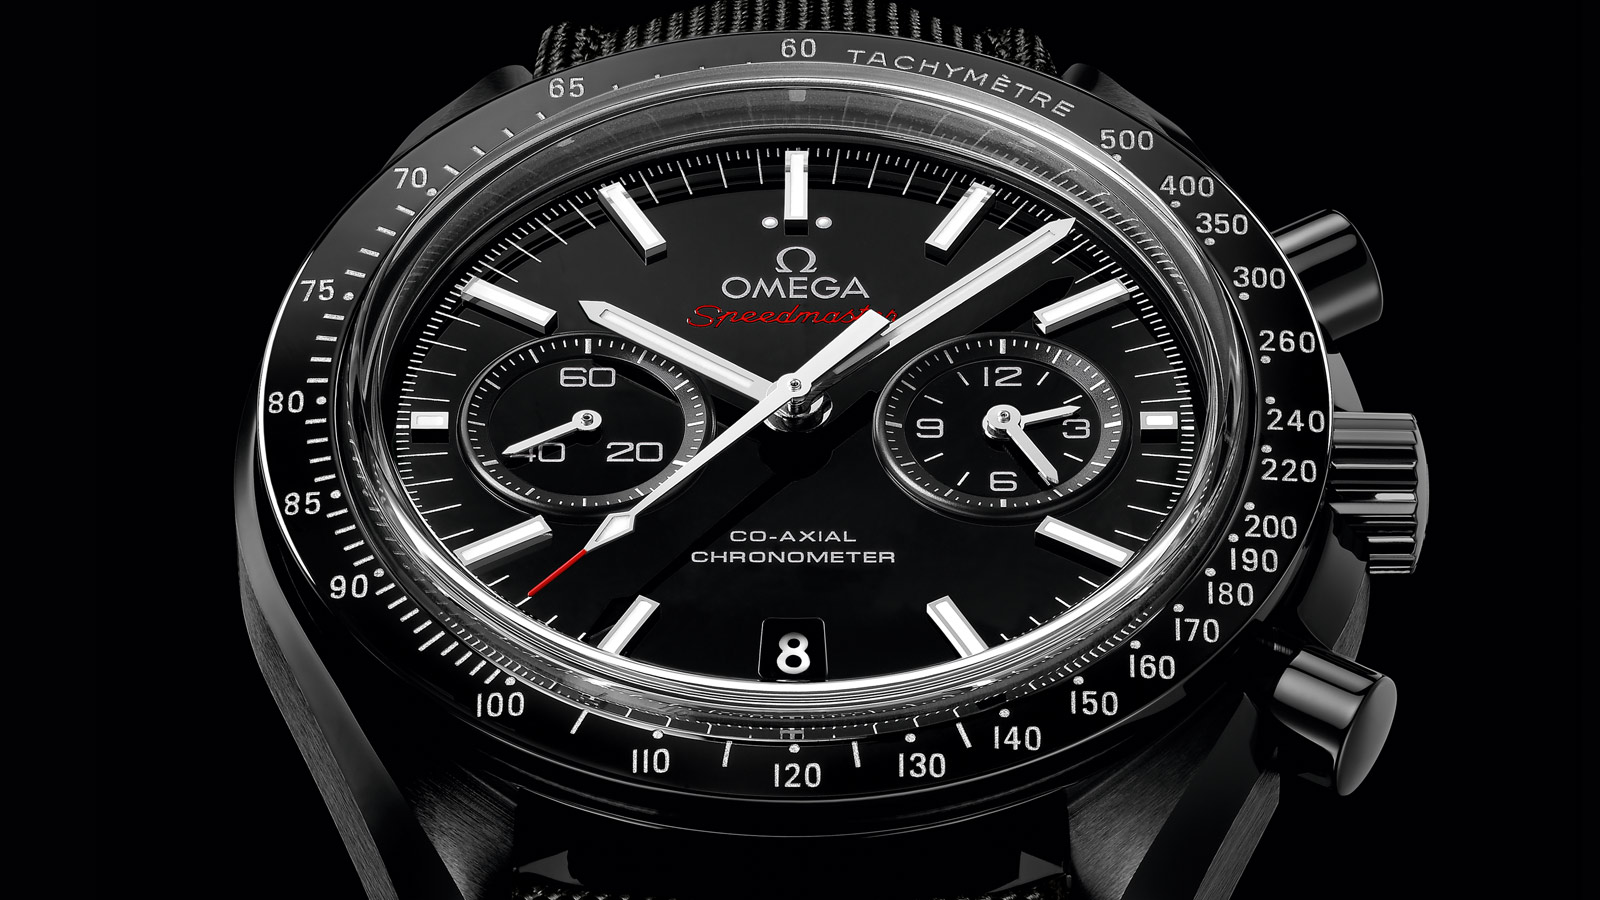 Speedmaster ムーンウォッチ Moonwatch Omega Co‑Axial Chronograph 44.25 mm - 311.92.44.51.01.003 - ビュー 2